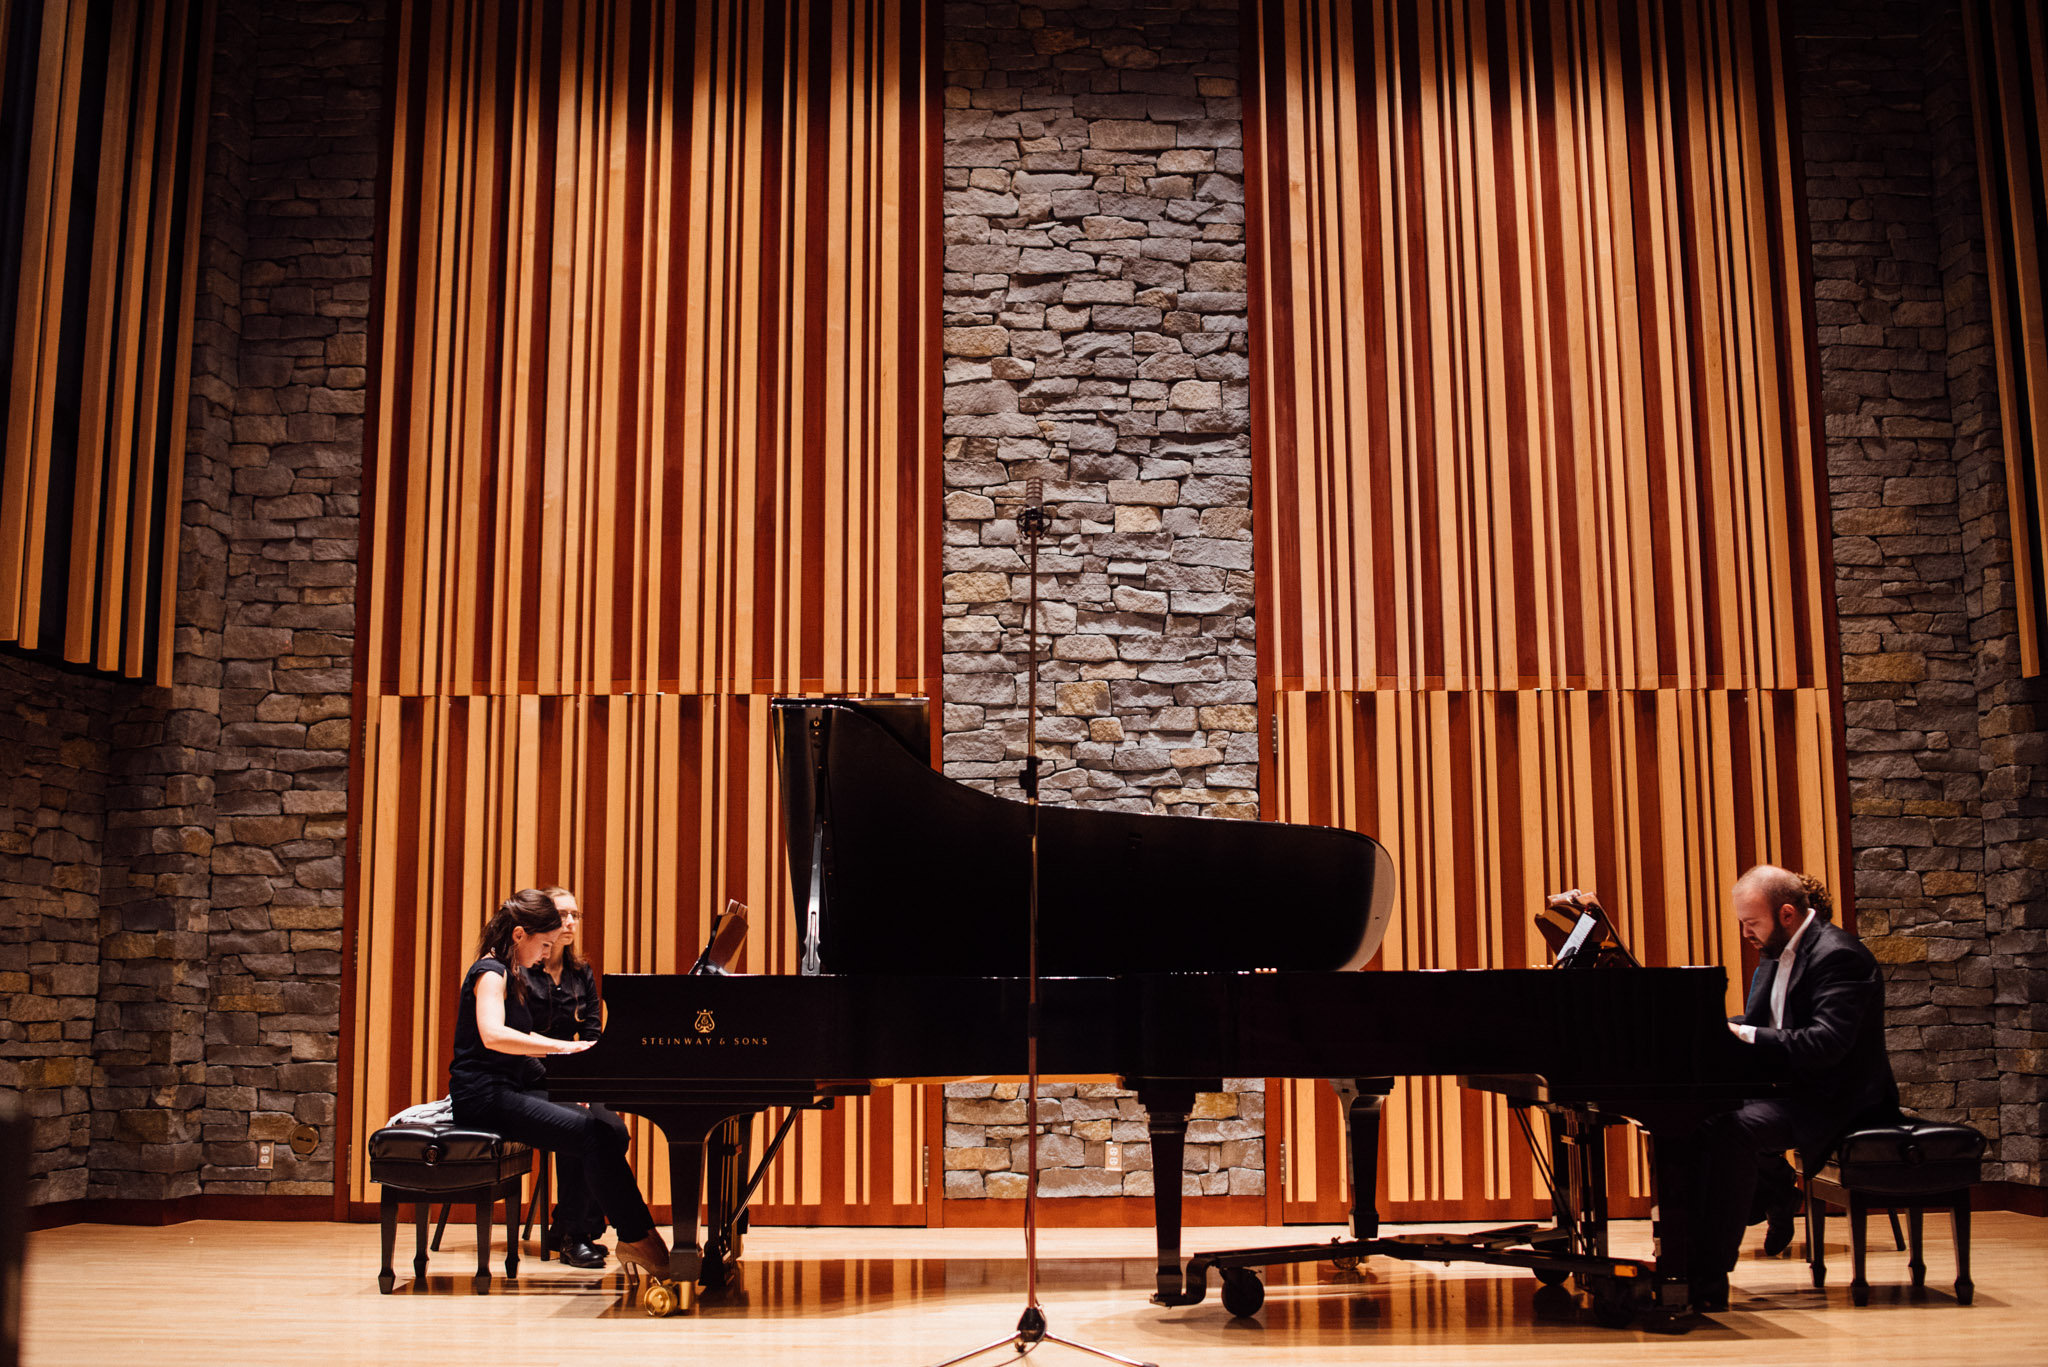 Fedorova-Takser Piano Duo Recital